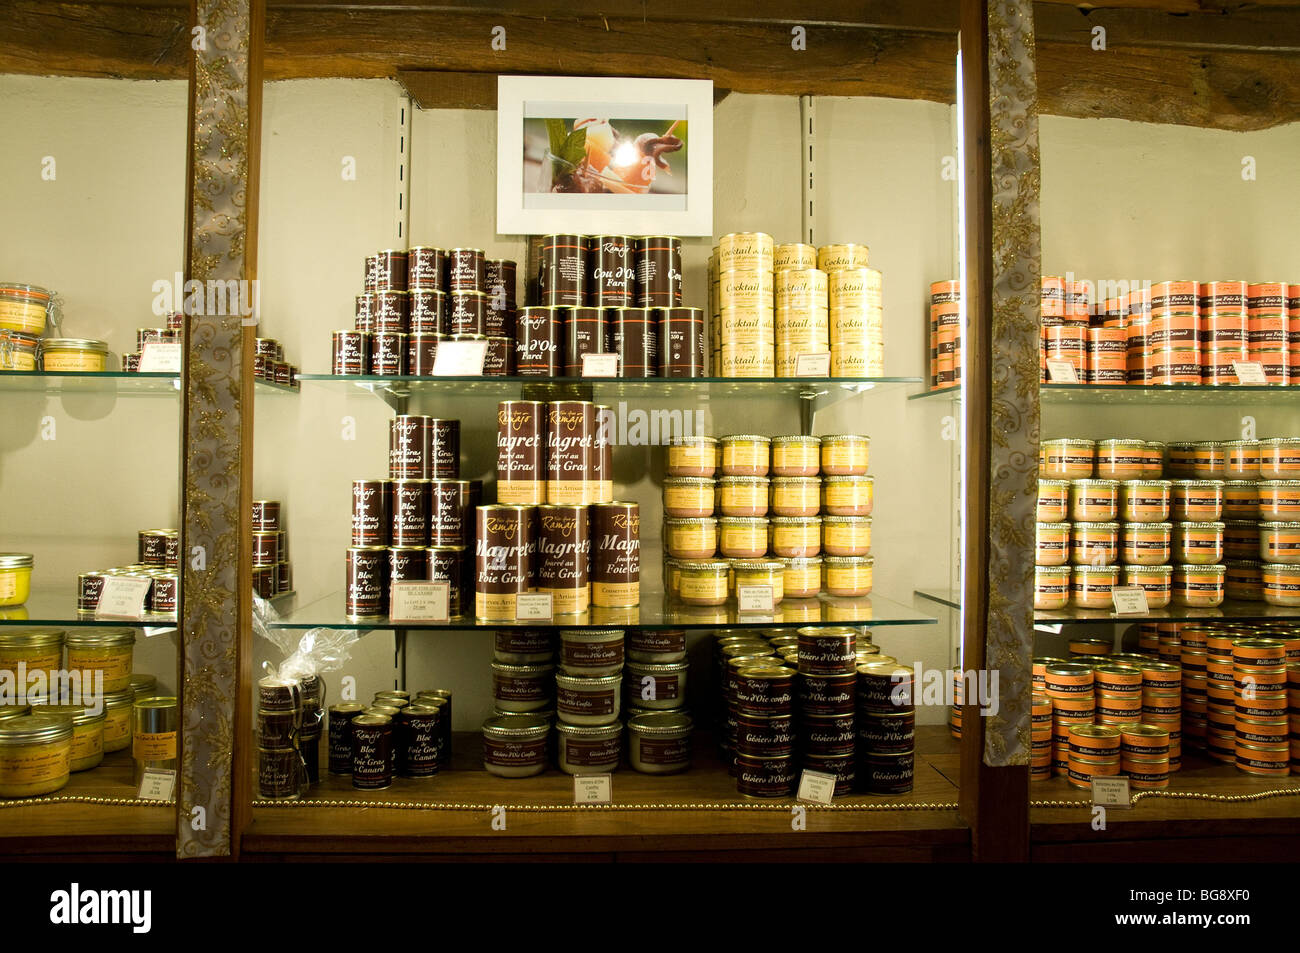 A variety of poultry products, foie gras paramount, displayed for sale in a French farm's boutique showcase - Stock Image